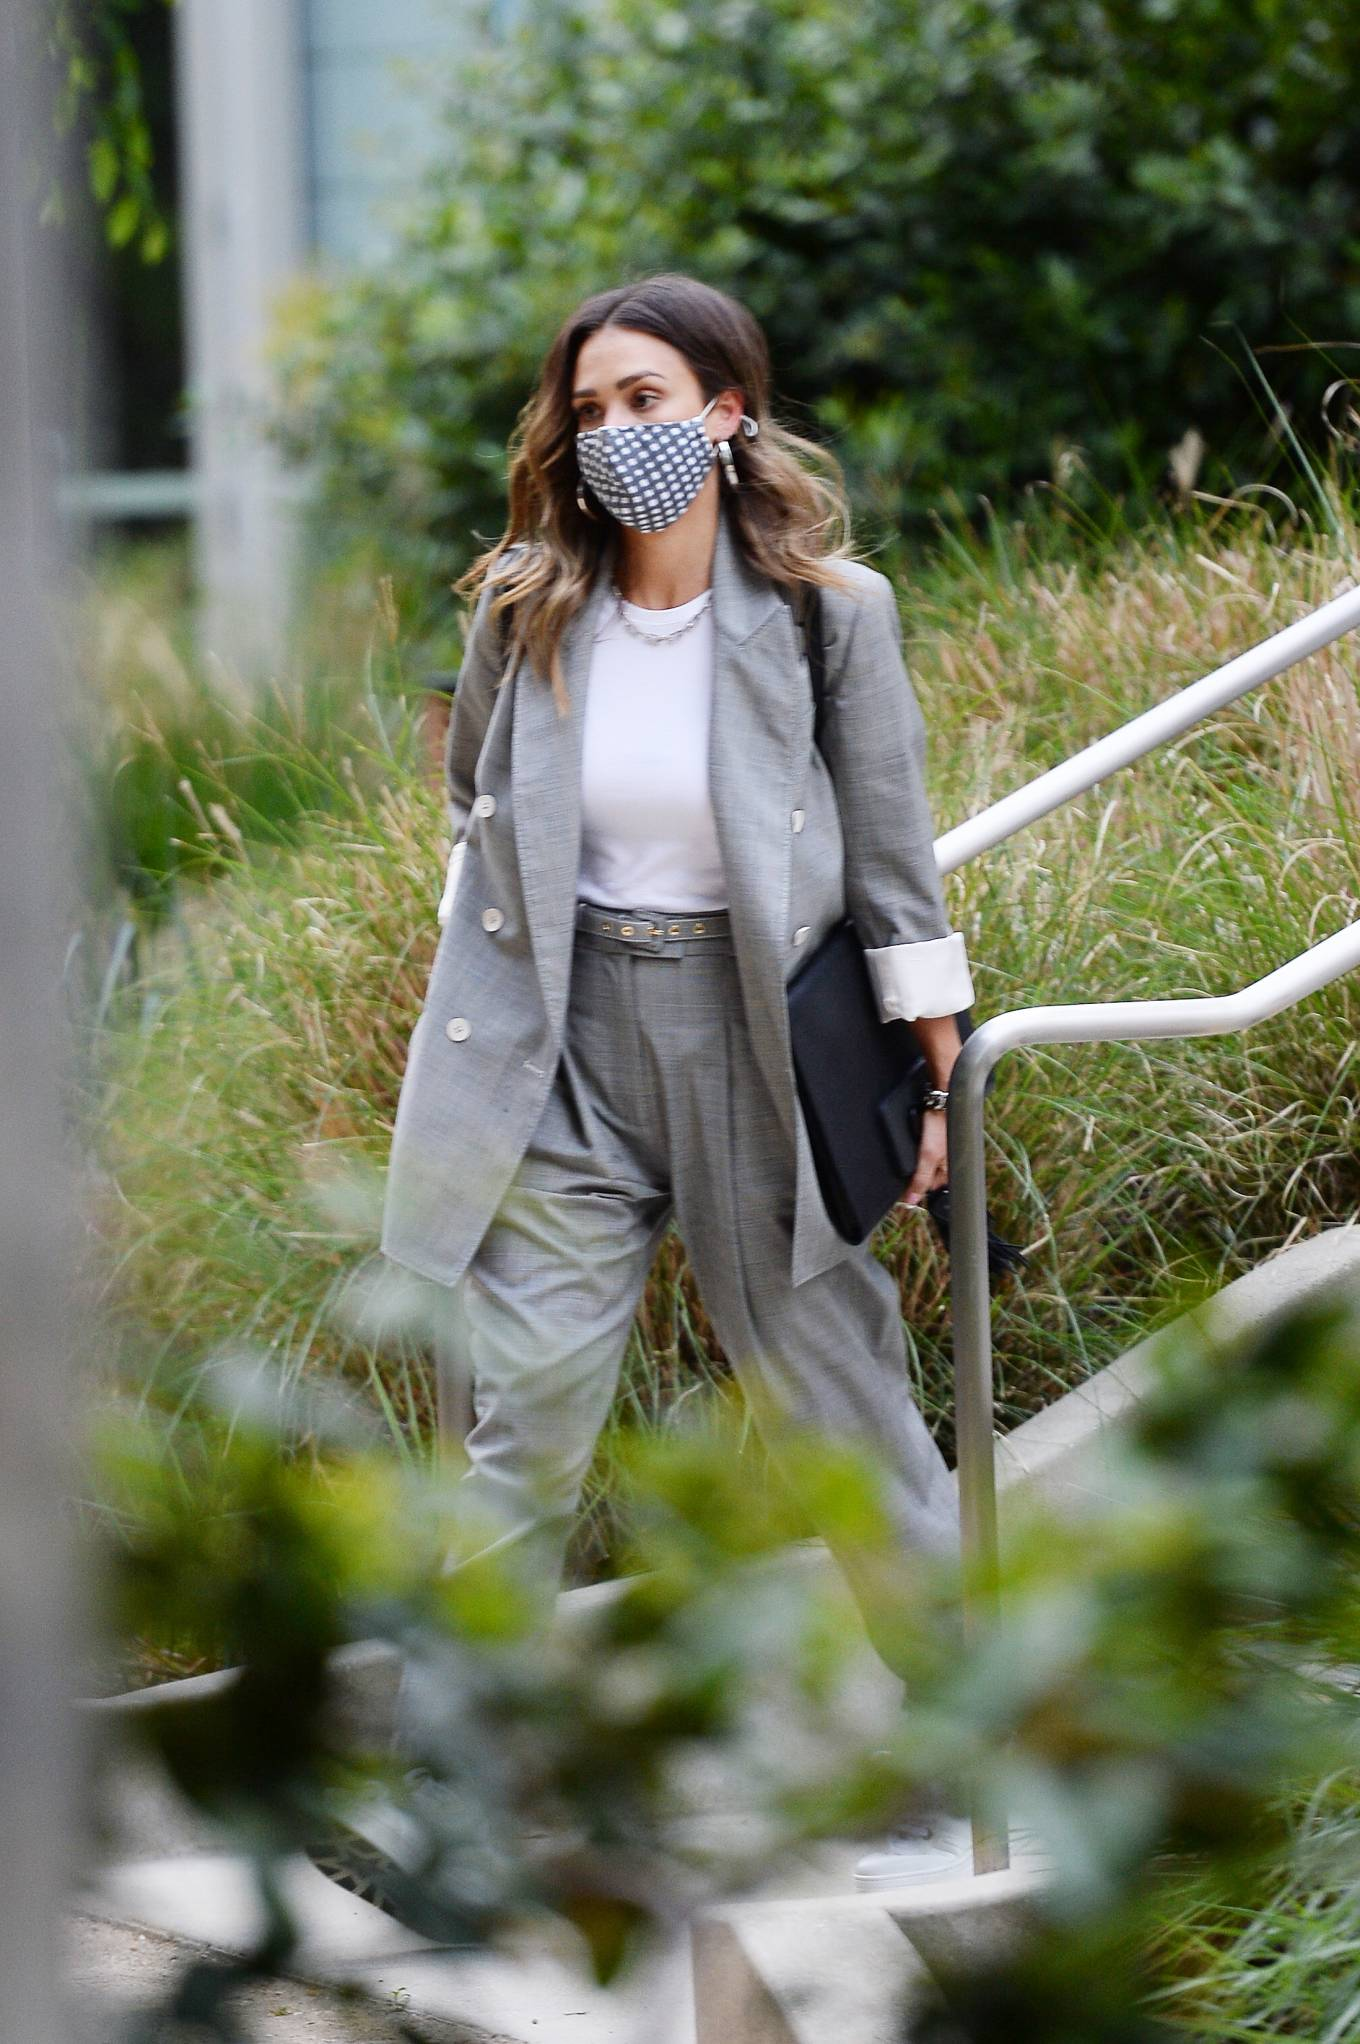 Jessica Alba - Dons bussines look while out of an office building in Los Angeles